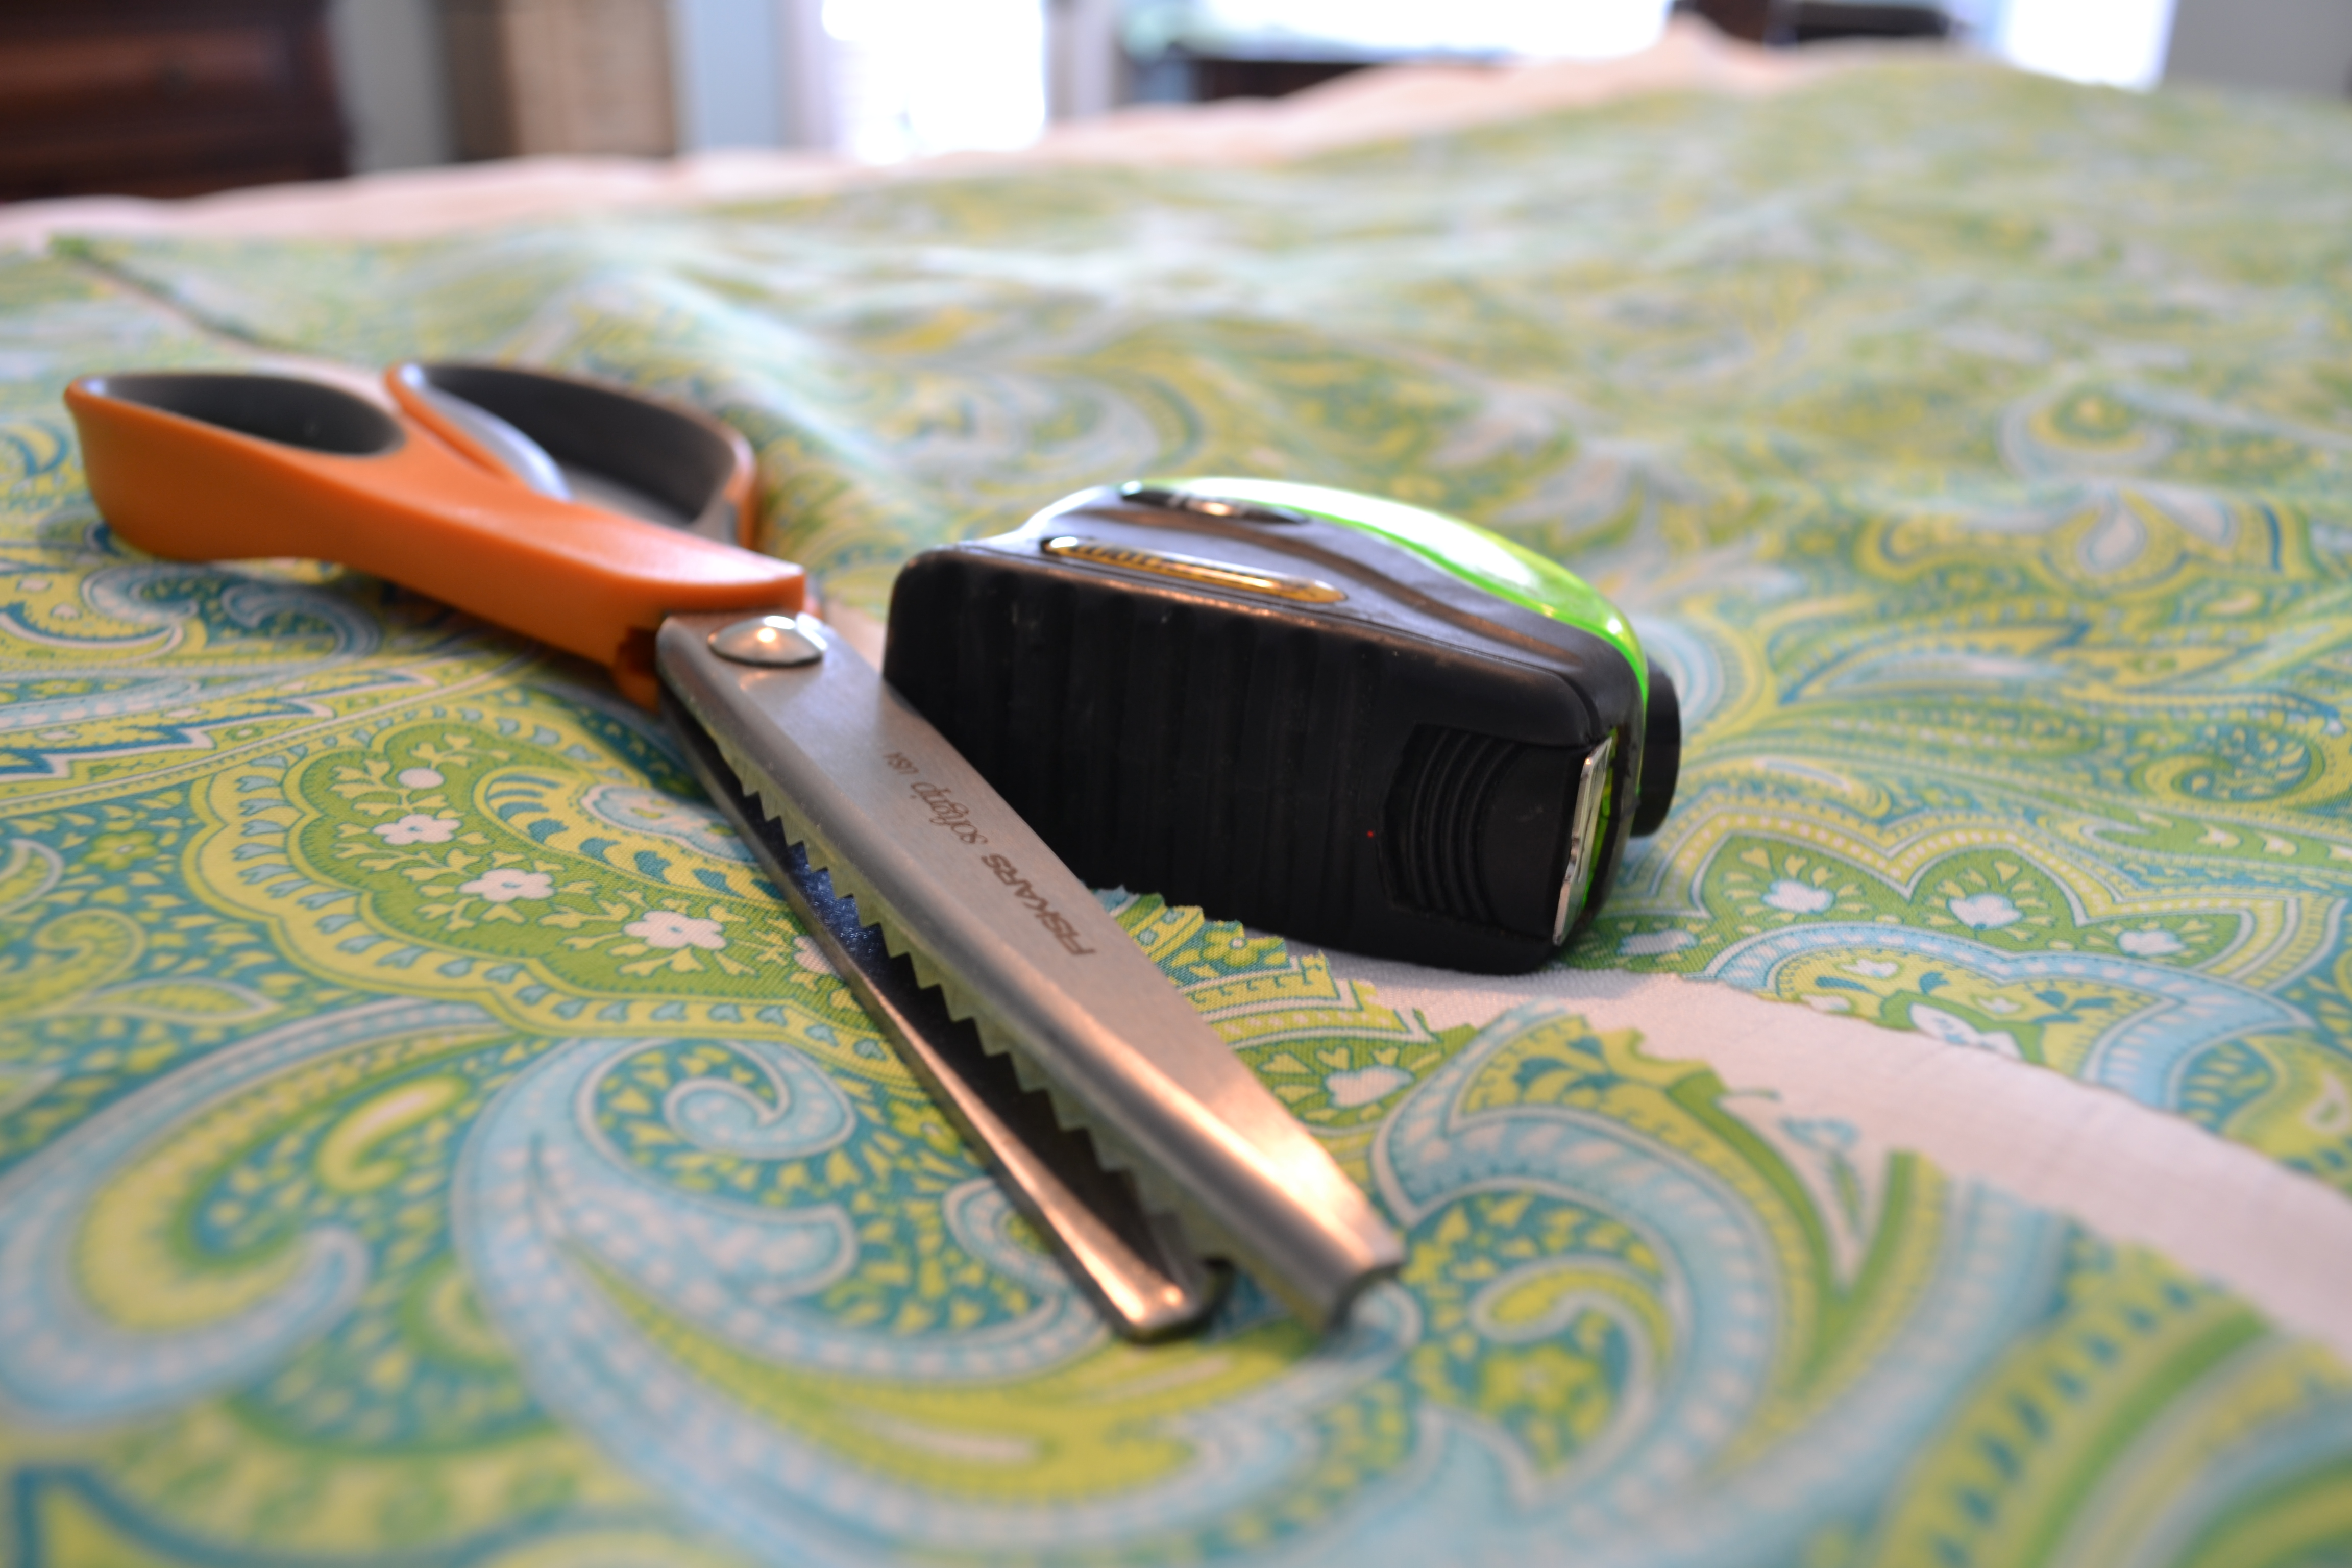 How to sew a table runner - Diy Fabric Table Runner Handmade Fabric Table Runner Table Runner Ideas Diy No